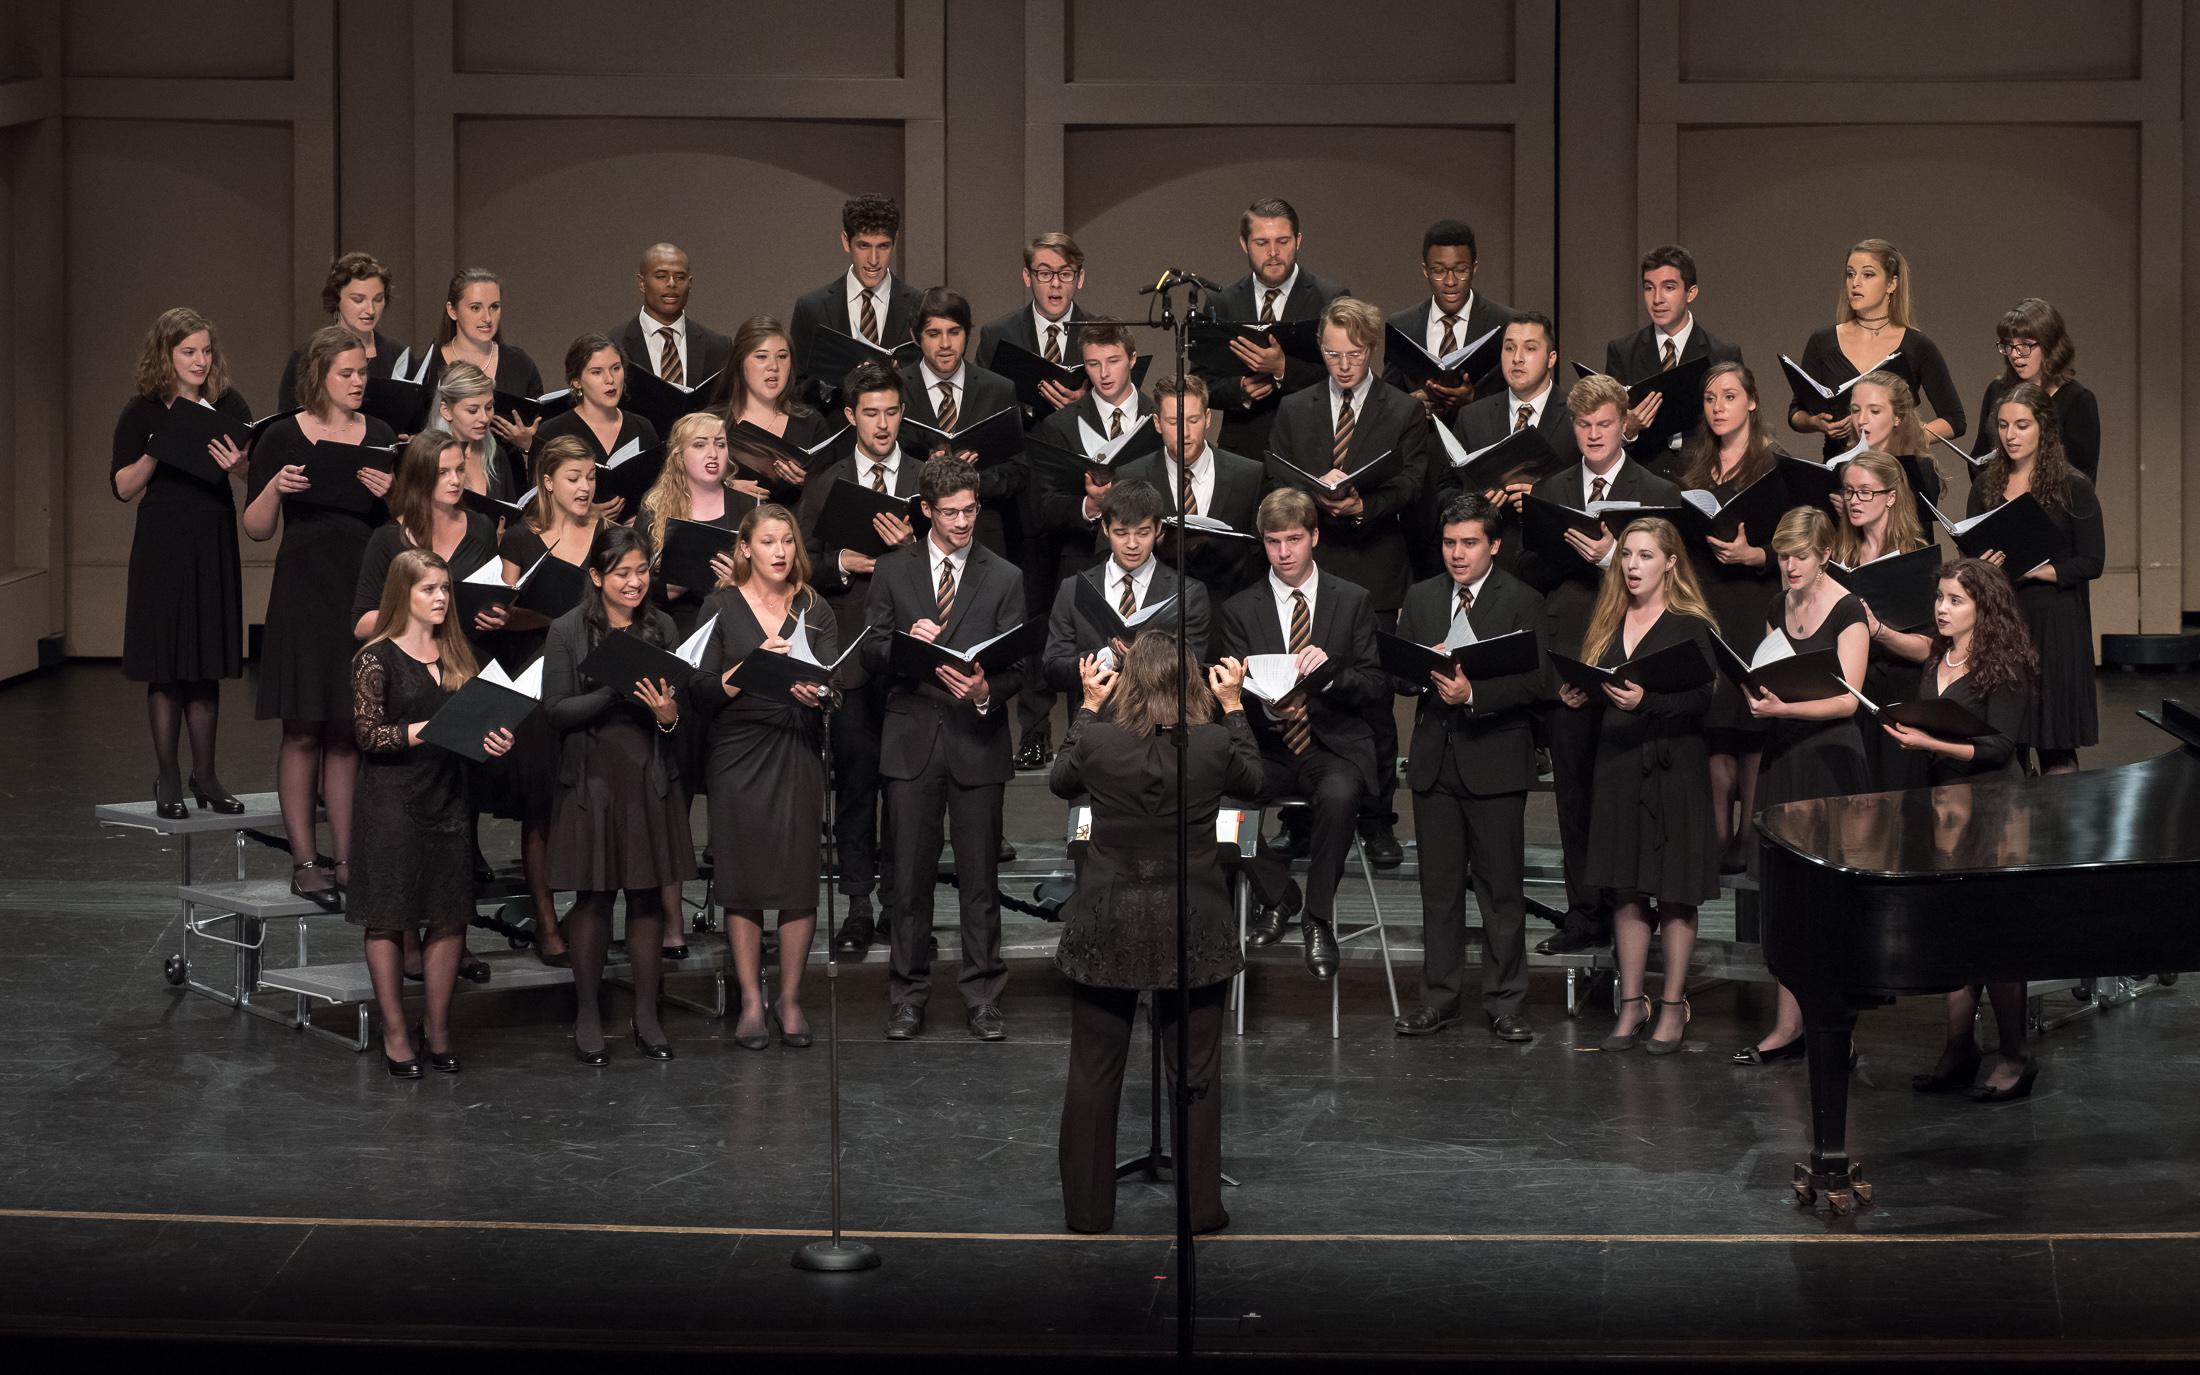 Glee Club 2015 Homecoming Concert